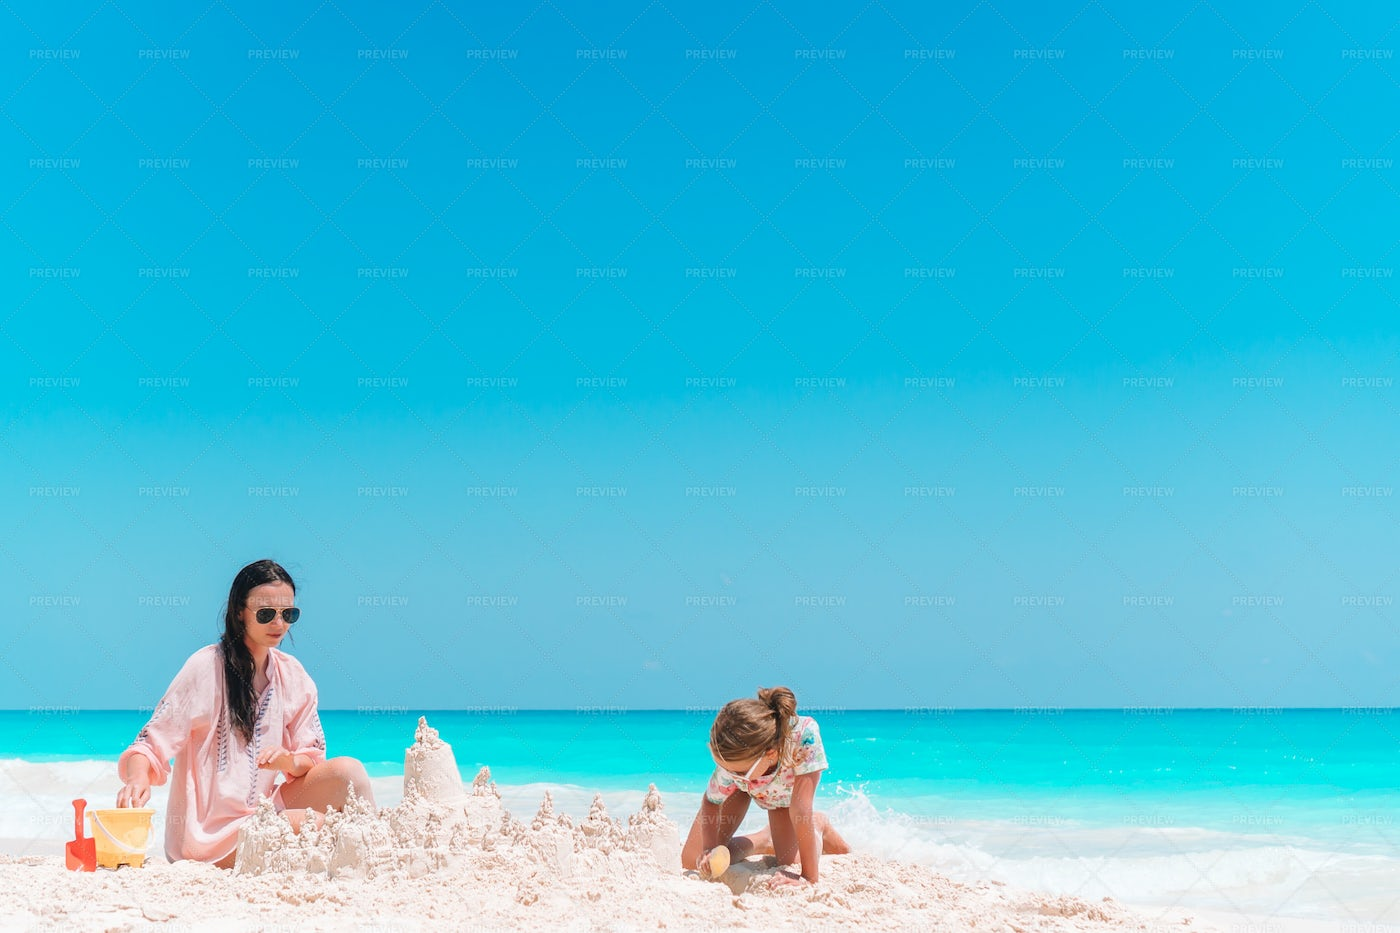 Building Sand Castles With Mom: Stock Photos